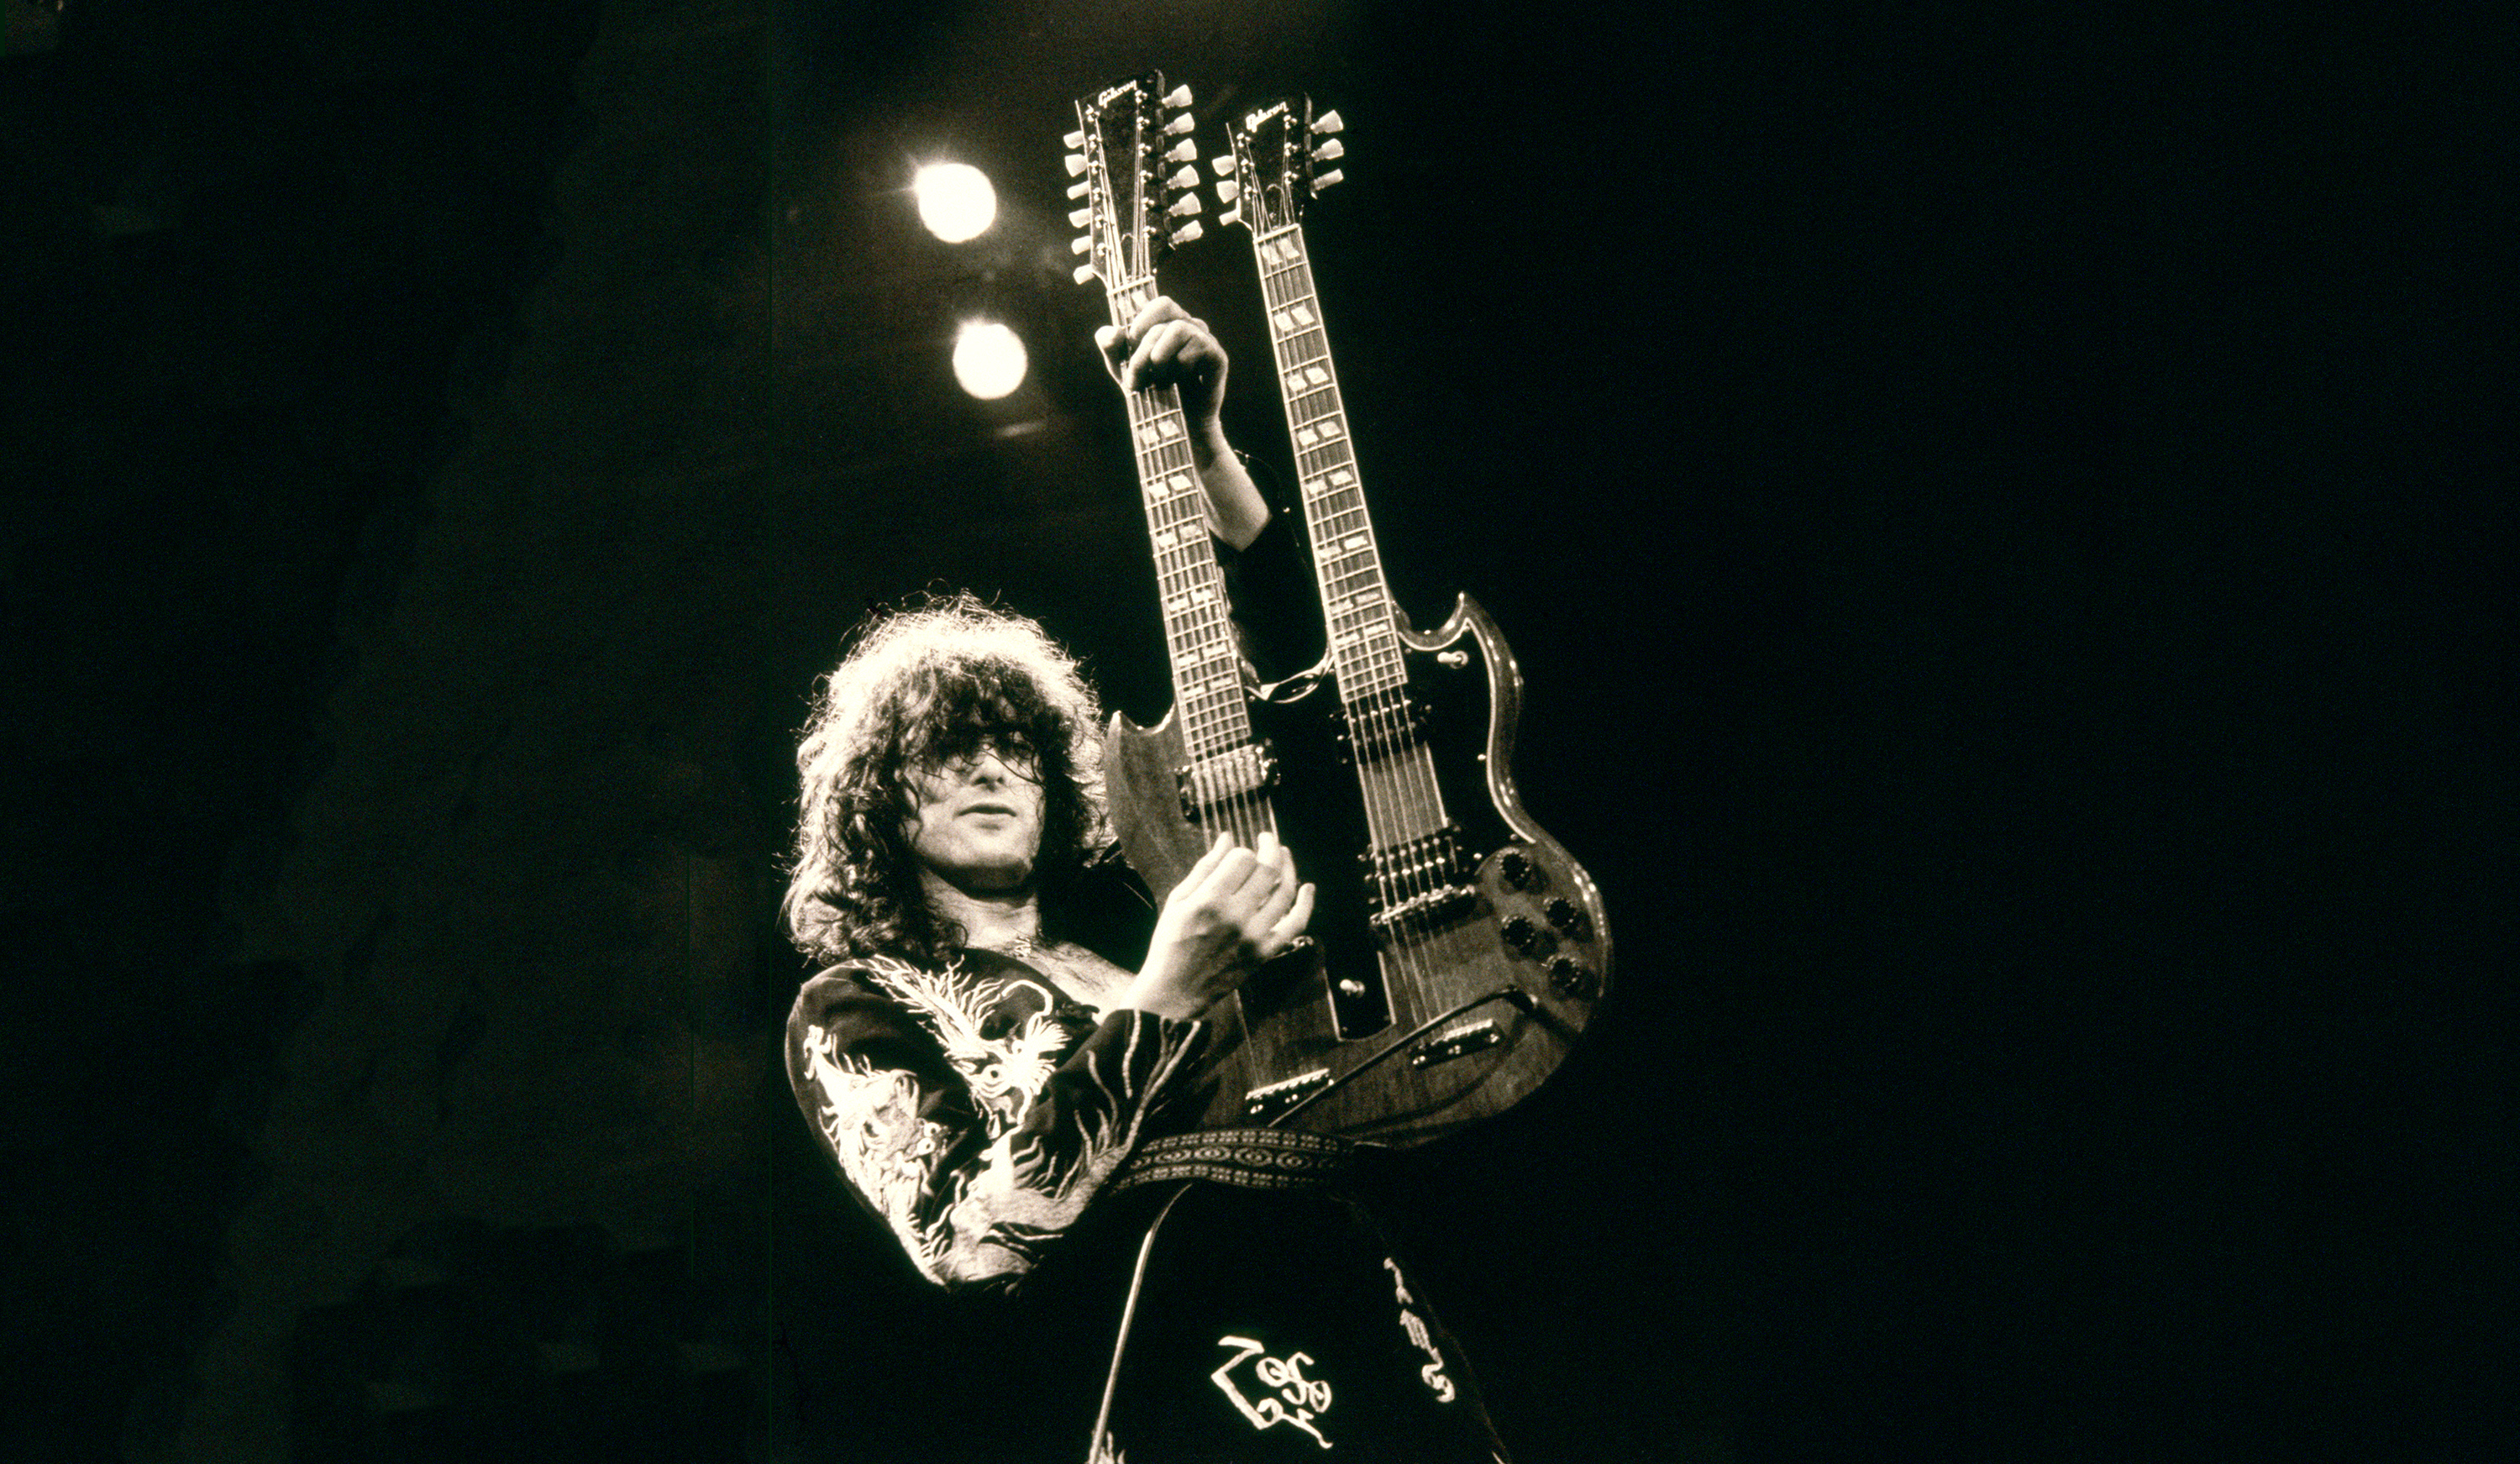 Jimmy Page: The Song That Changed My Life